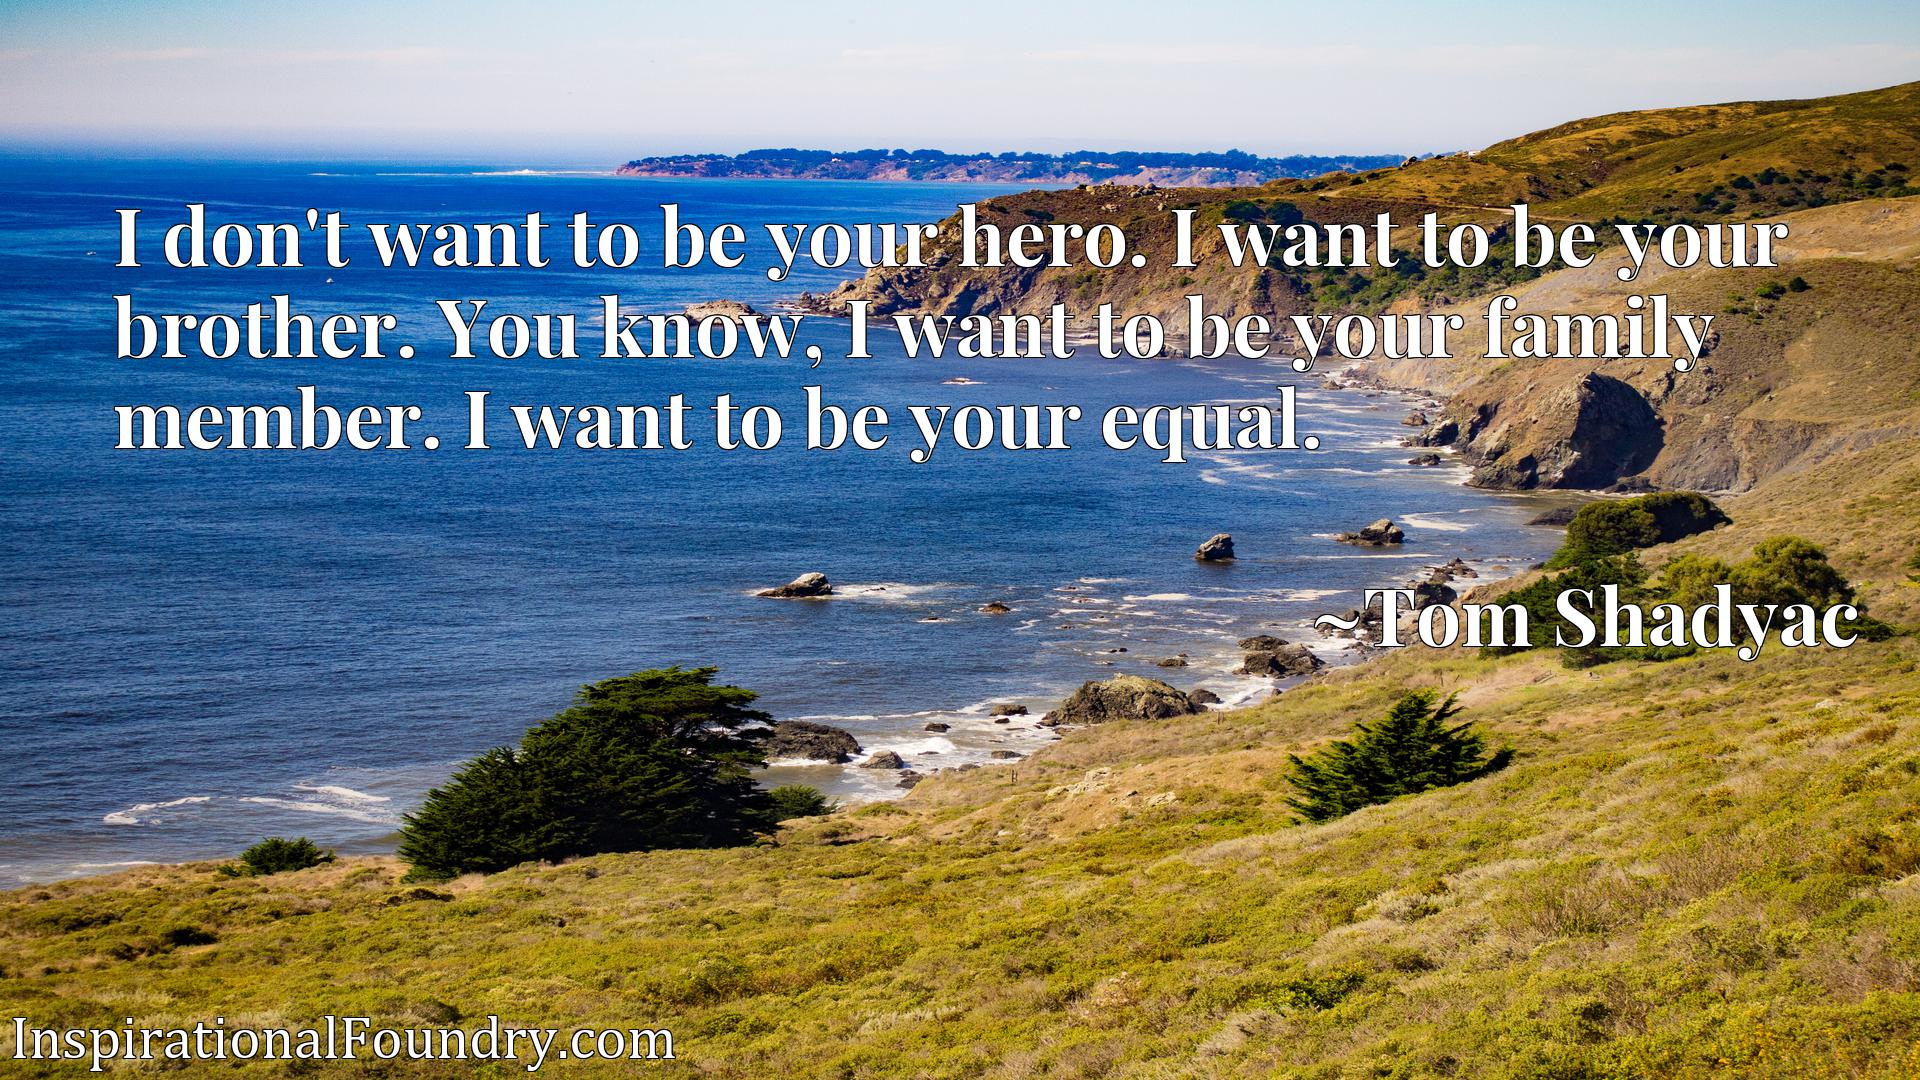 I don't want to be your hero. I want to be your brother. You know, I want to be your family member. I want to be your equal.